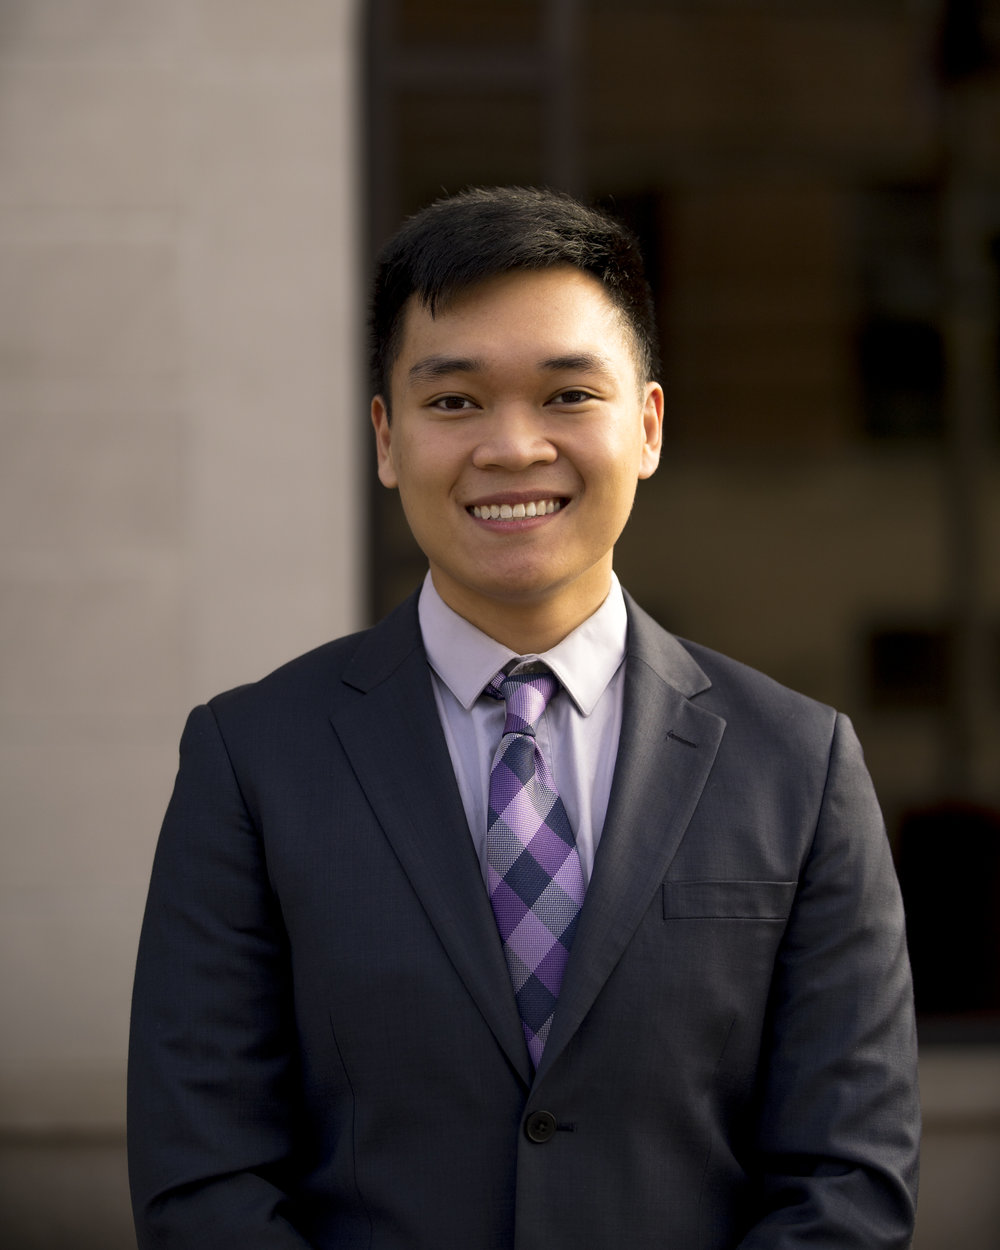 - Phil NguyenHey! My name is Phil and I am in the final year of my Masters at the University of Ontario Institute of Technology. My thesis explores online gambling and competitive video gaming as a sport (Esports). My hobbies include playing video games and powerlifting!